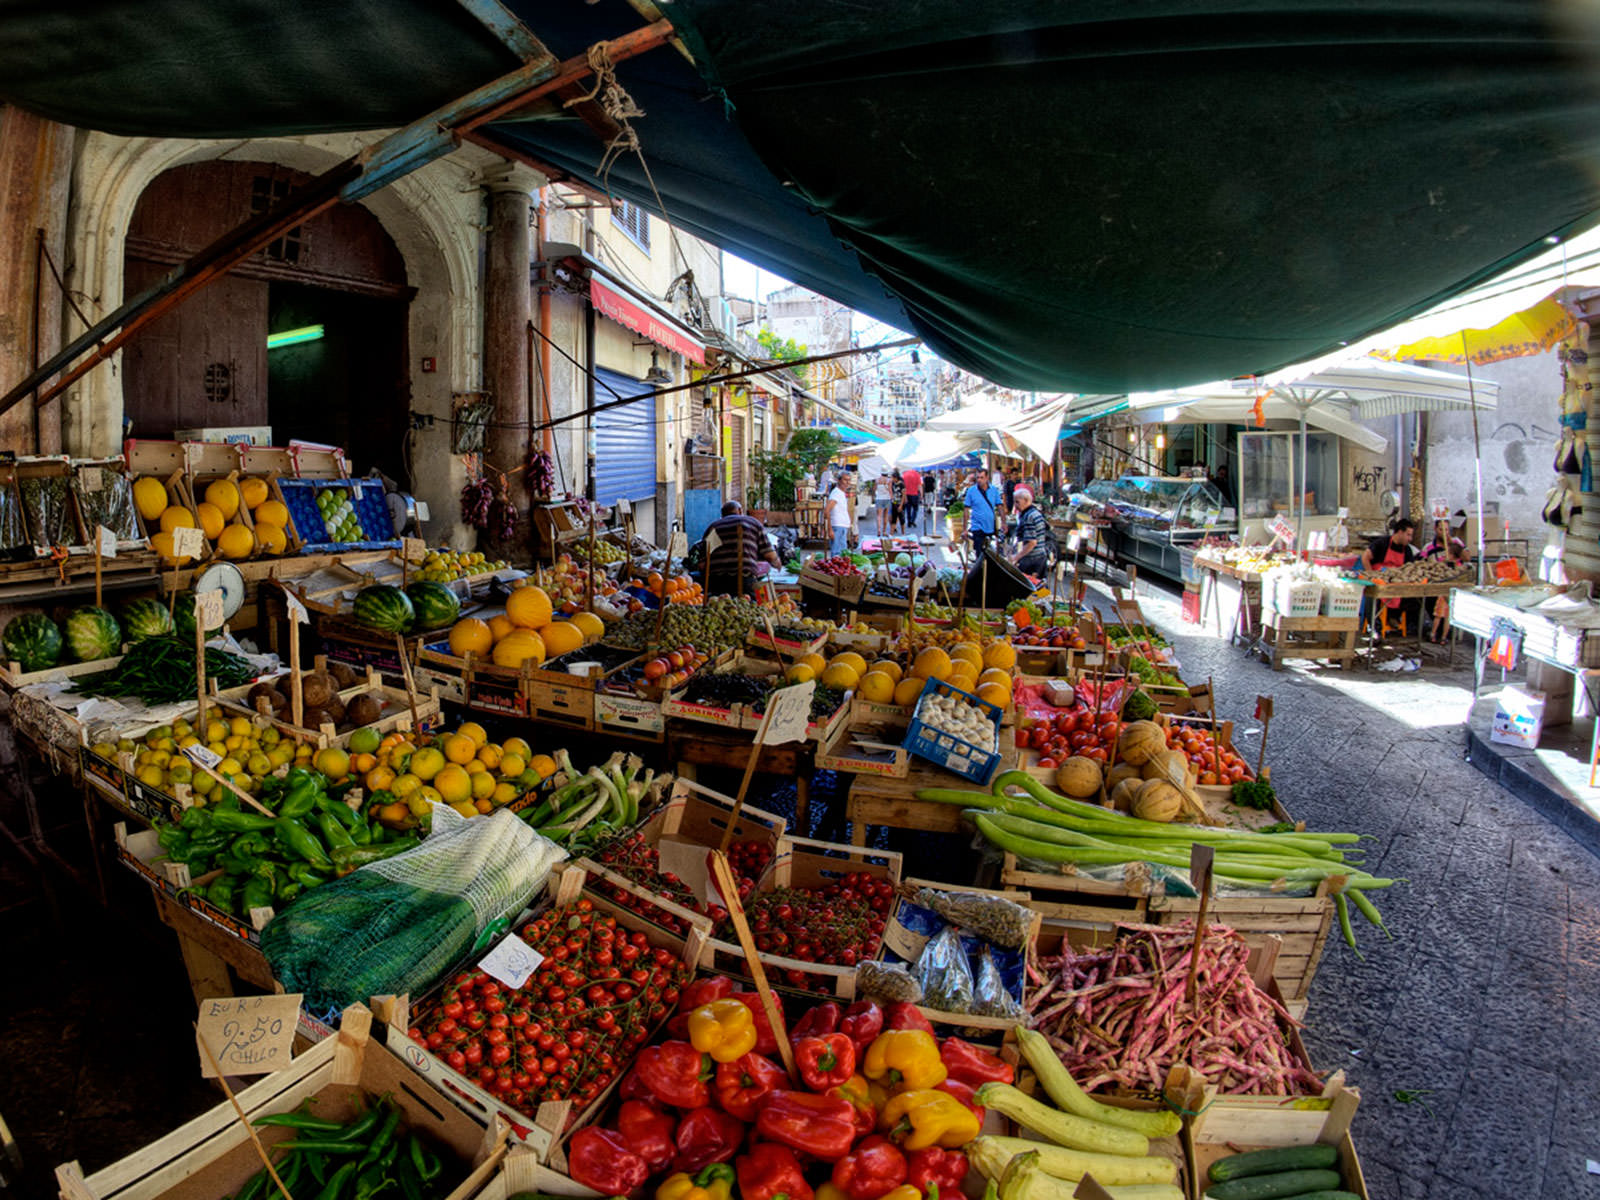 Palermo Ballarò typical market